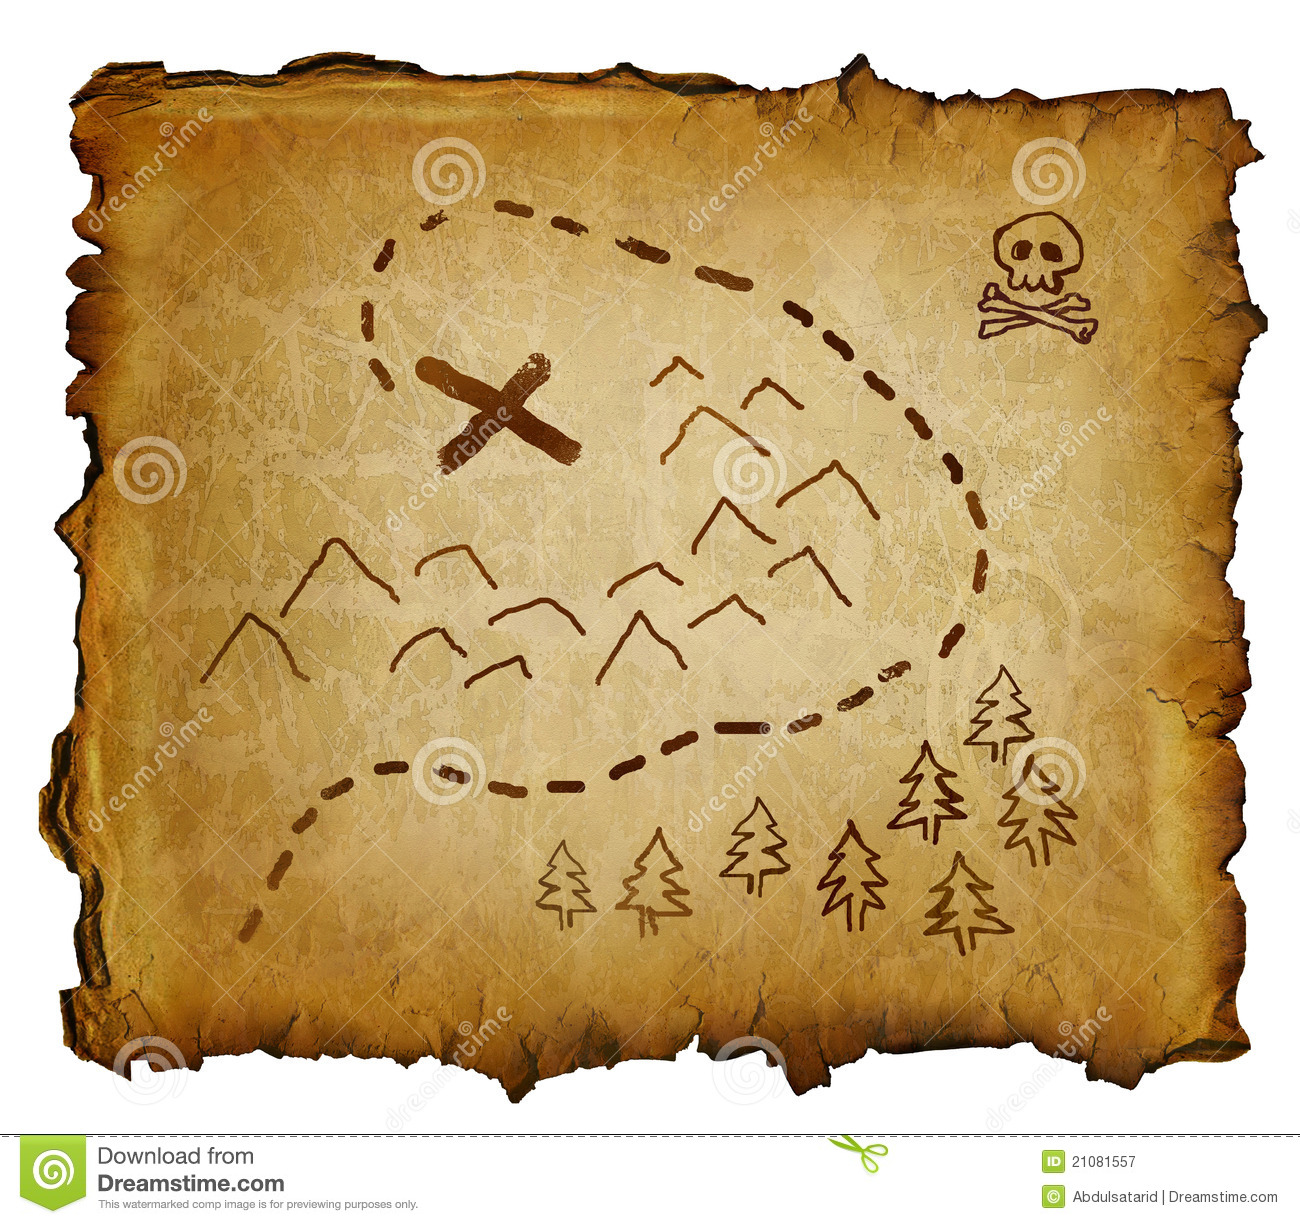 ... with treasure map and skull and crossbones. X marks the spot